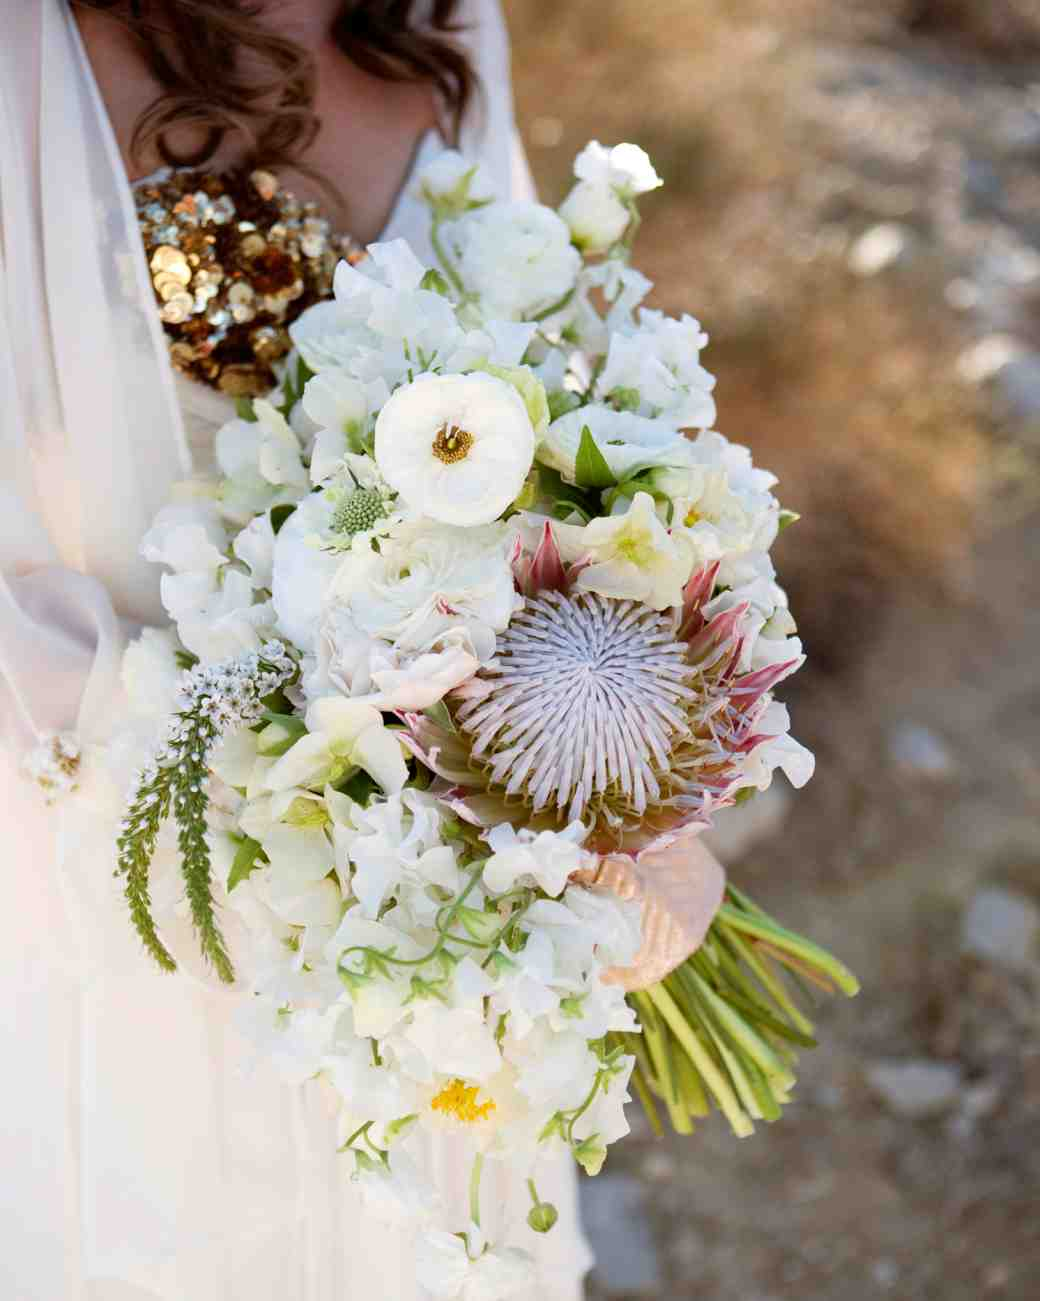 King Proteas Sweet Peas Ranunculus Veronicas Poppies And Garden Spray Roses Wedding Bouquet